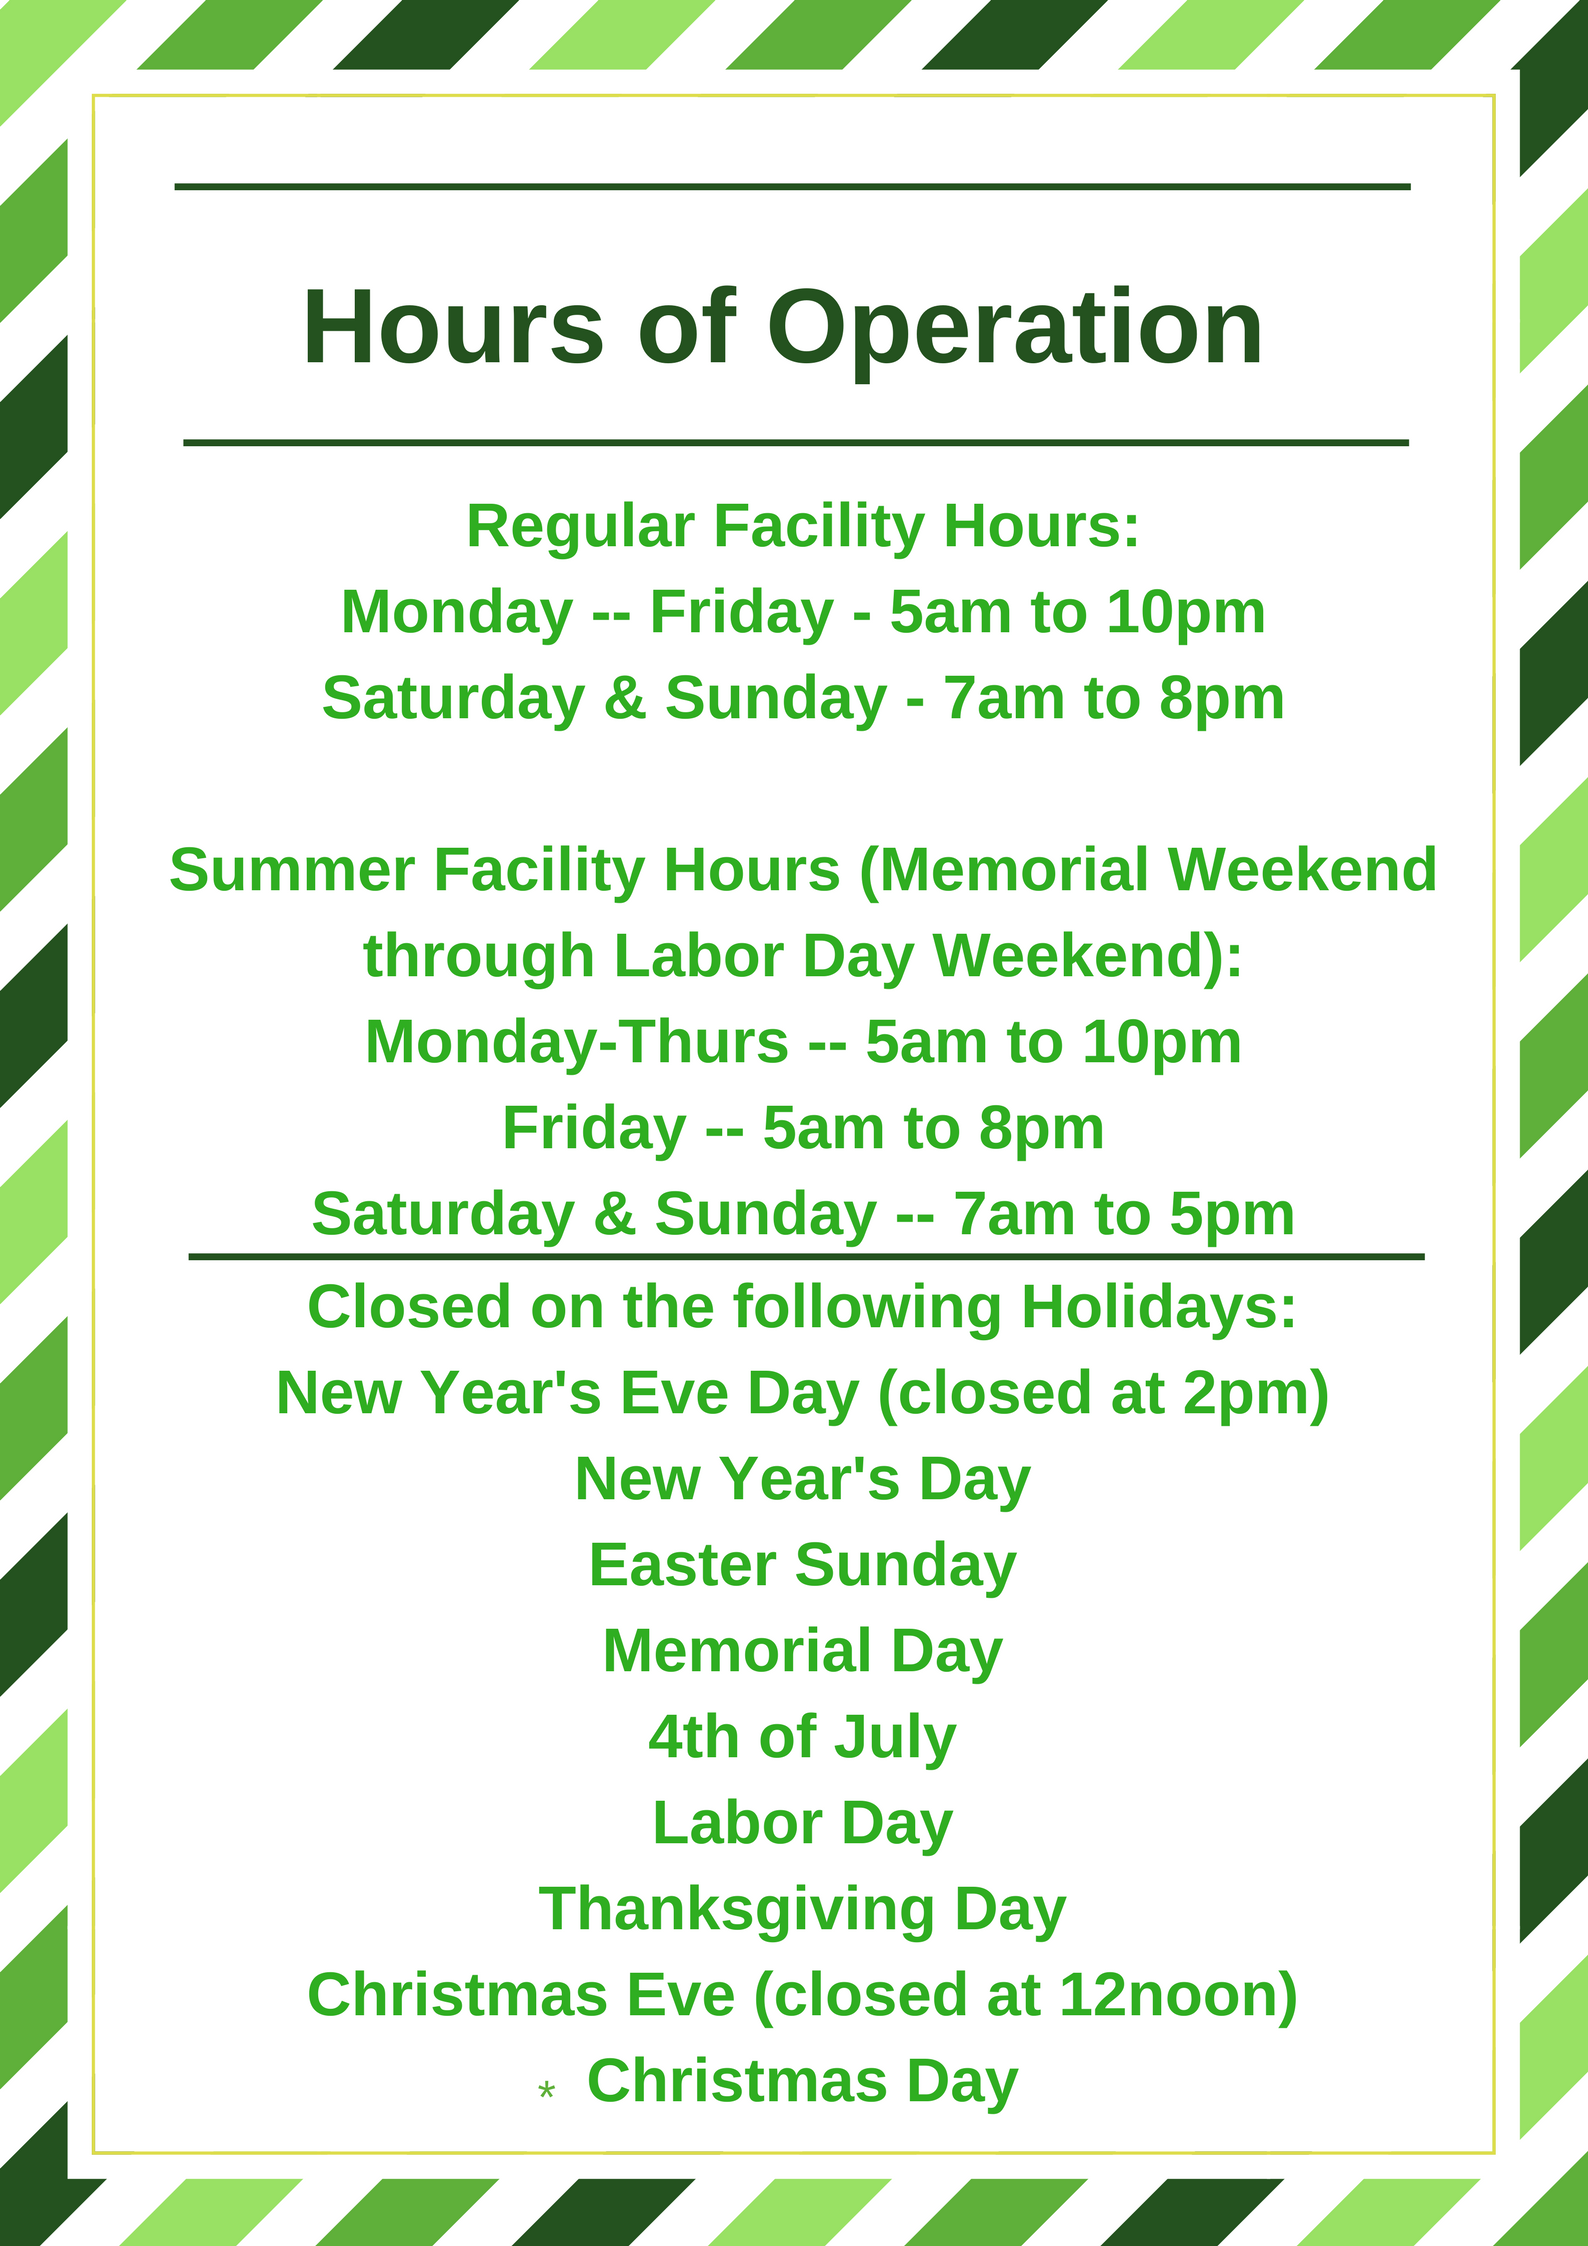 042718 - Hours of Operation